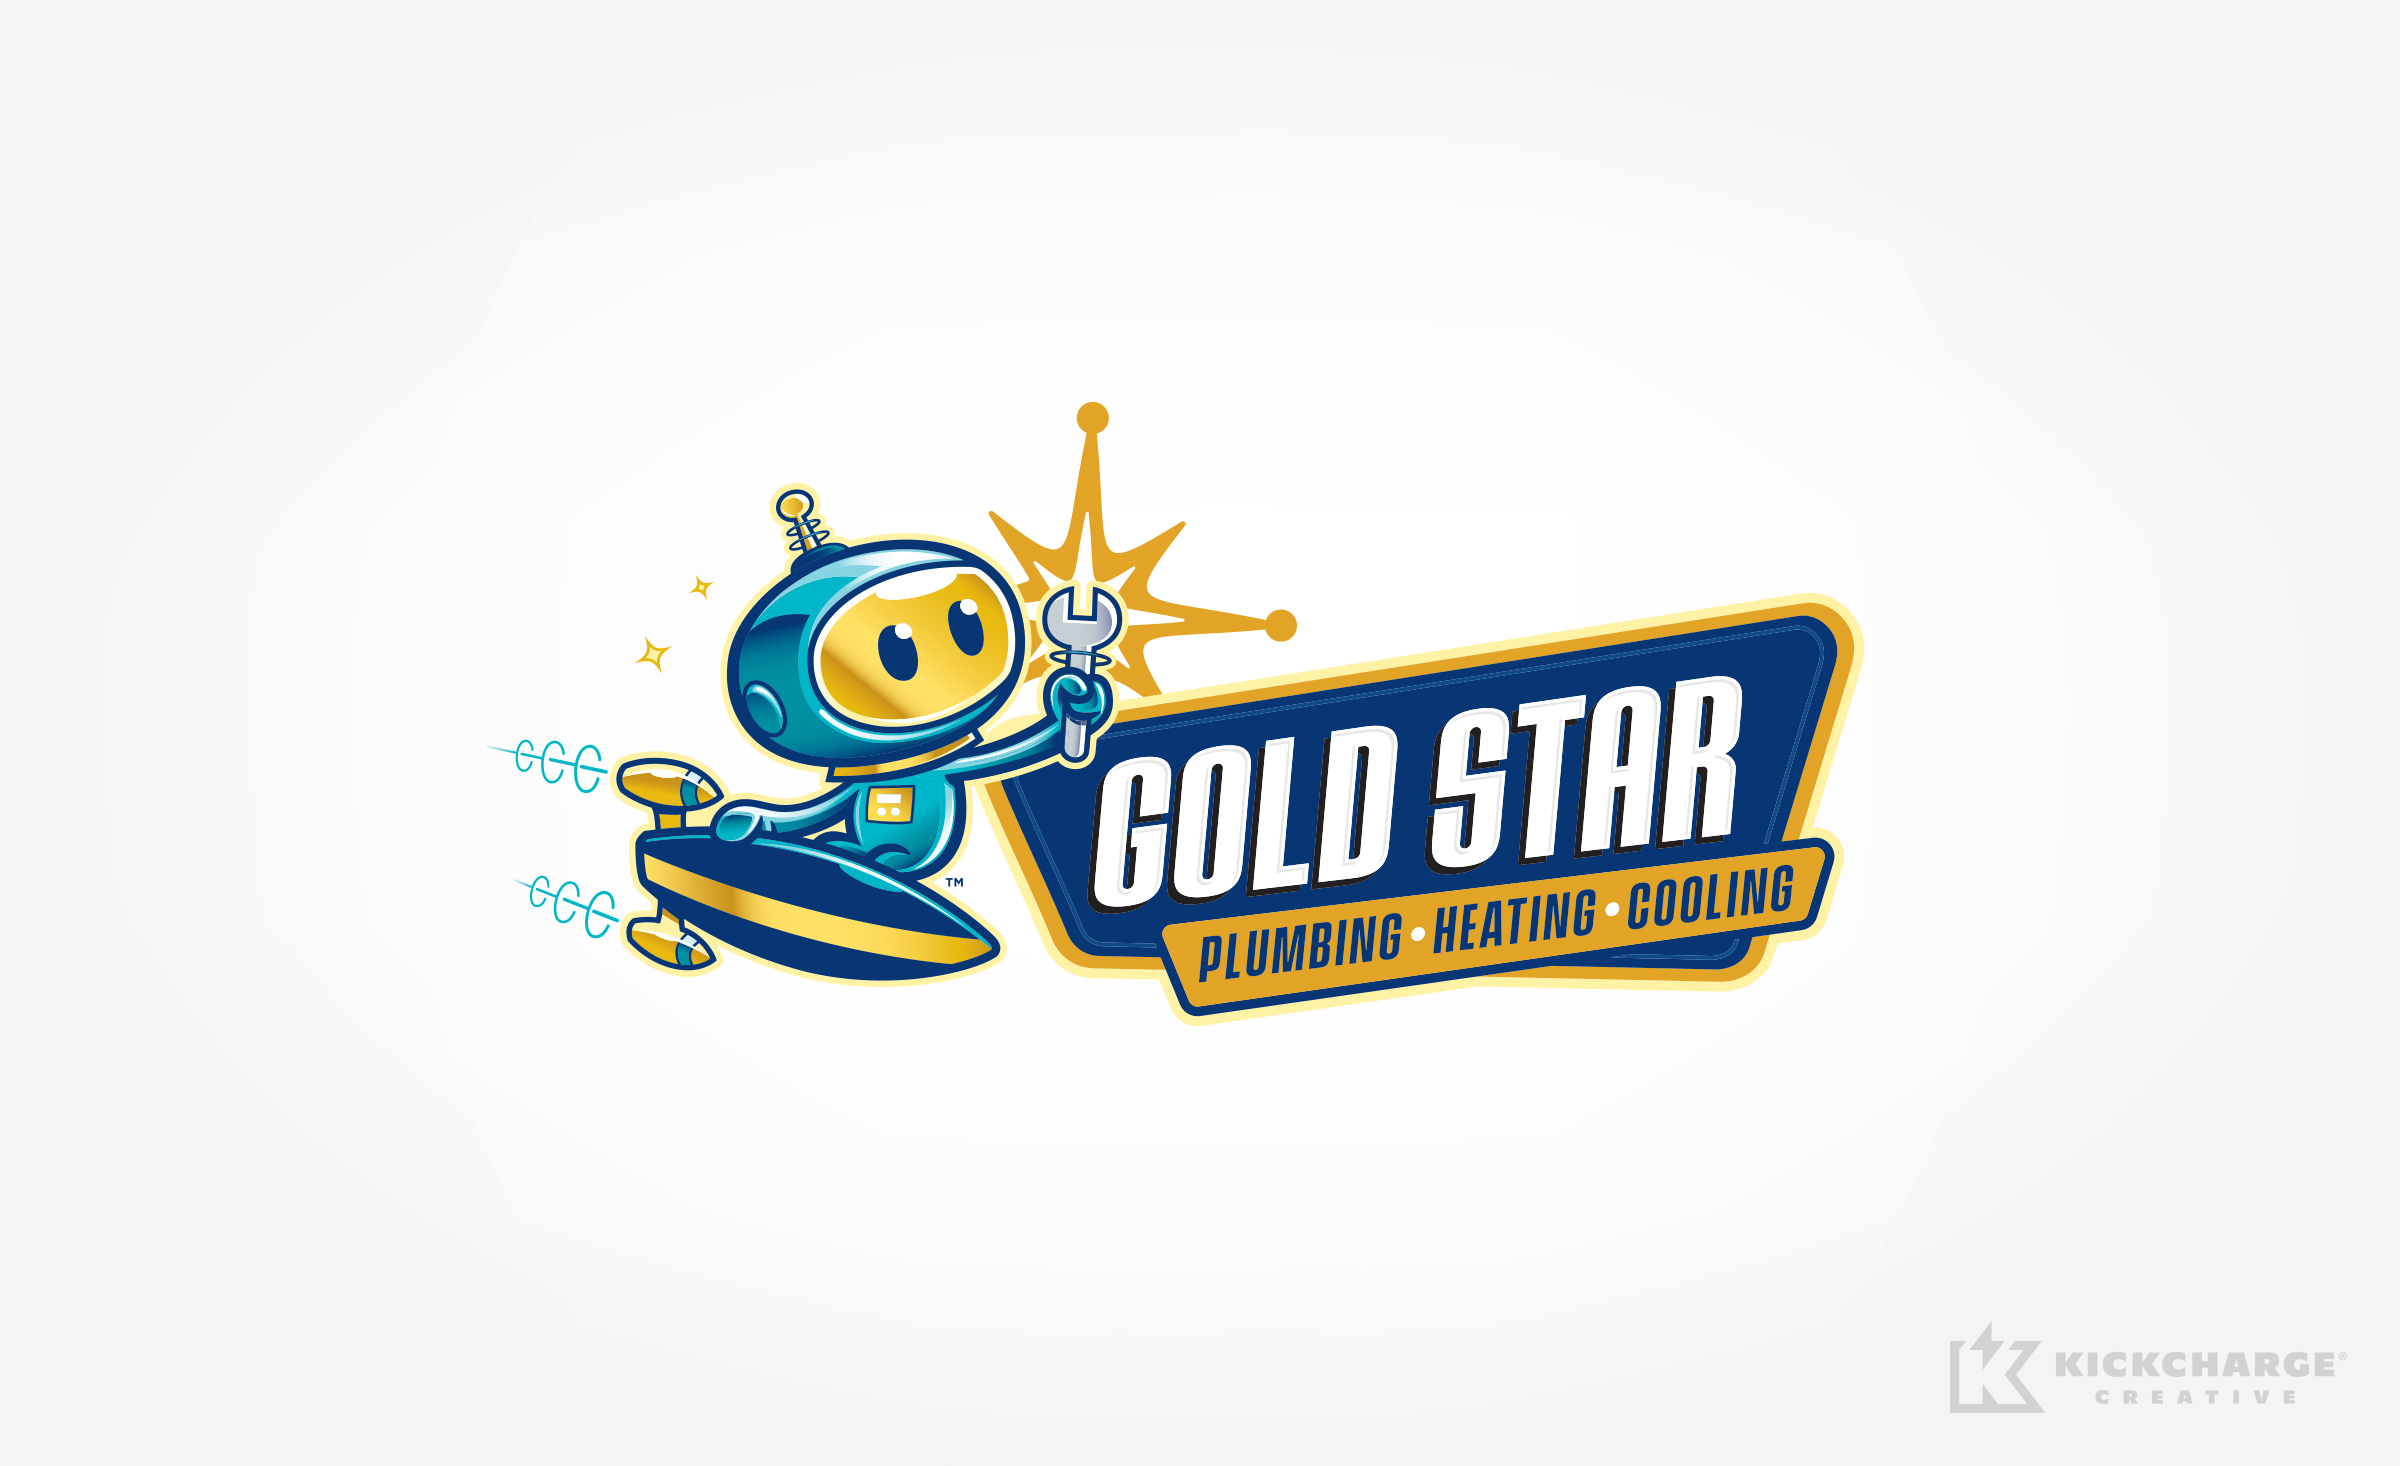 hvac and plumbing logo for Gold Star